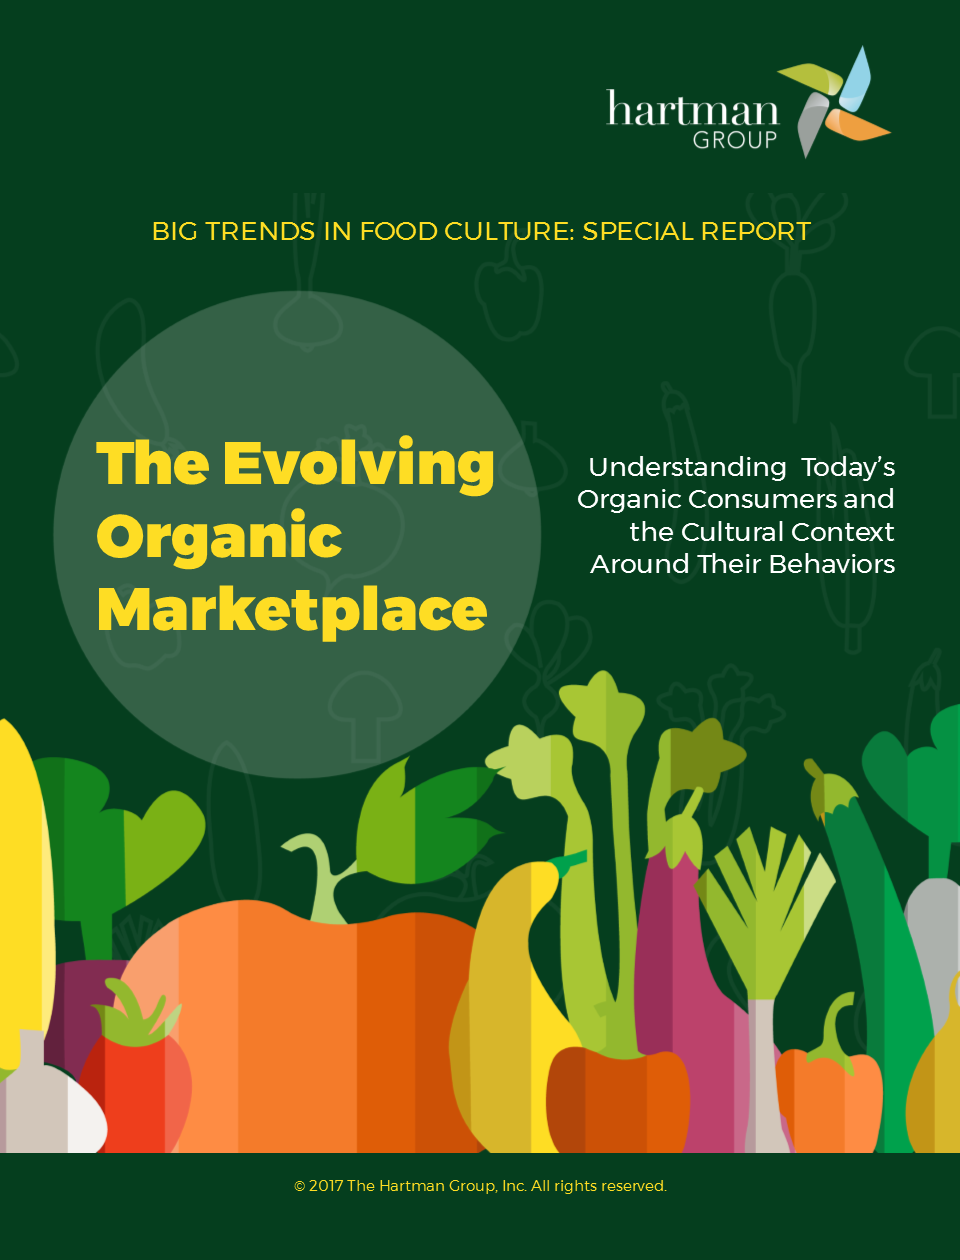 understanding the marketplace and consumers